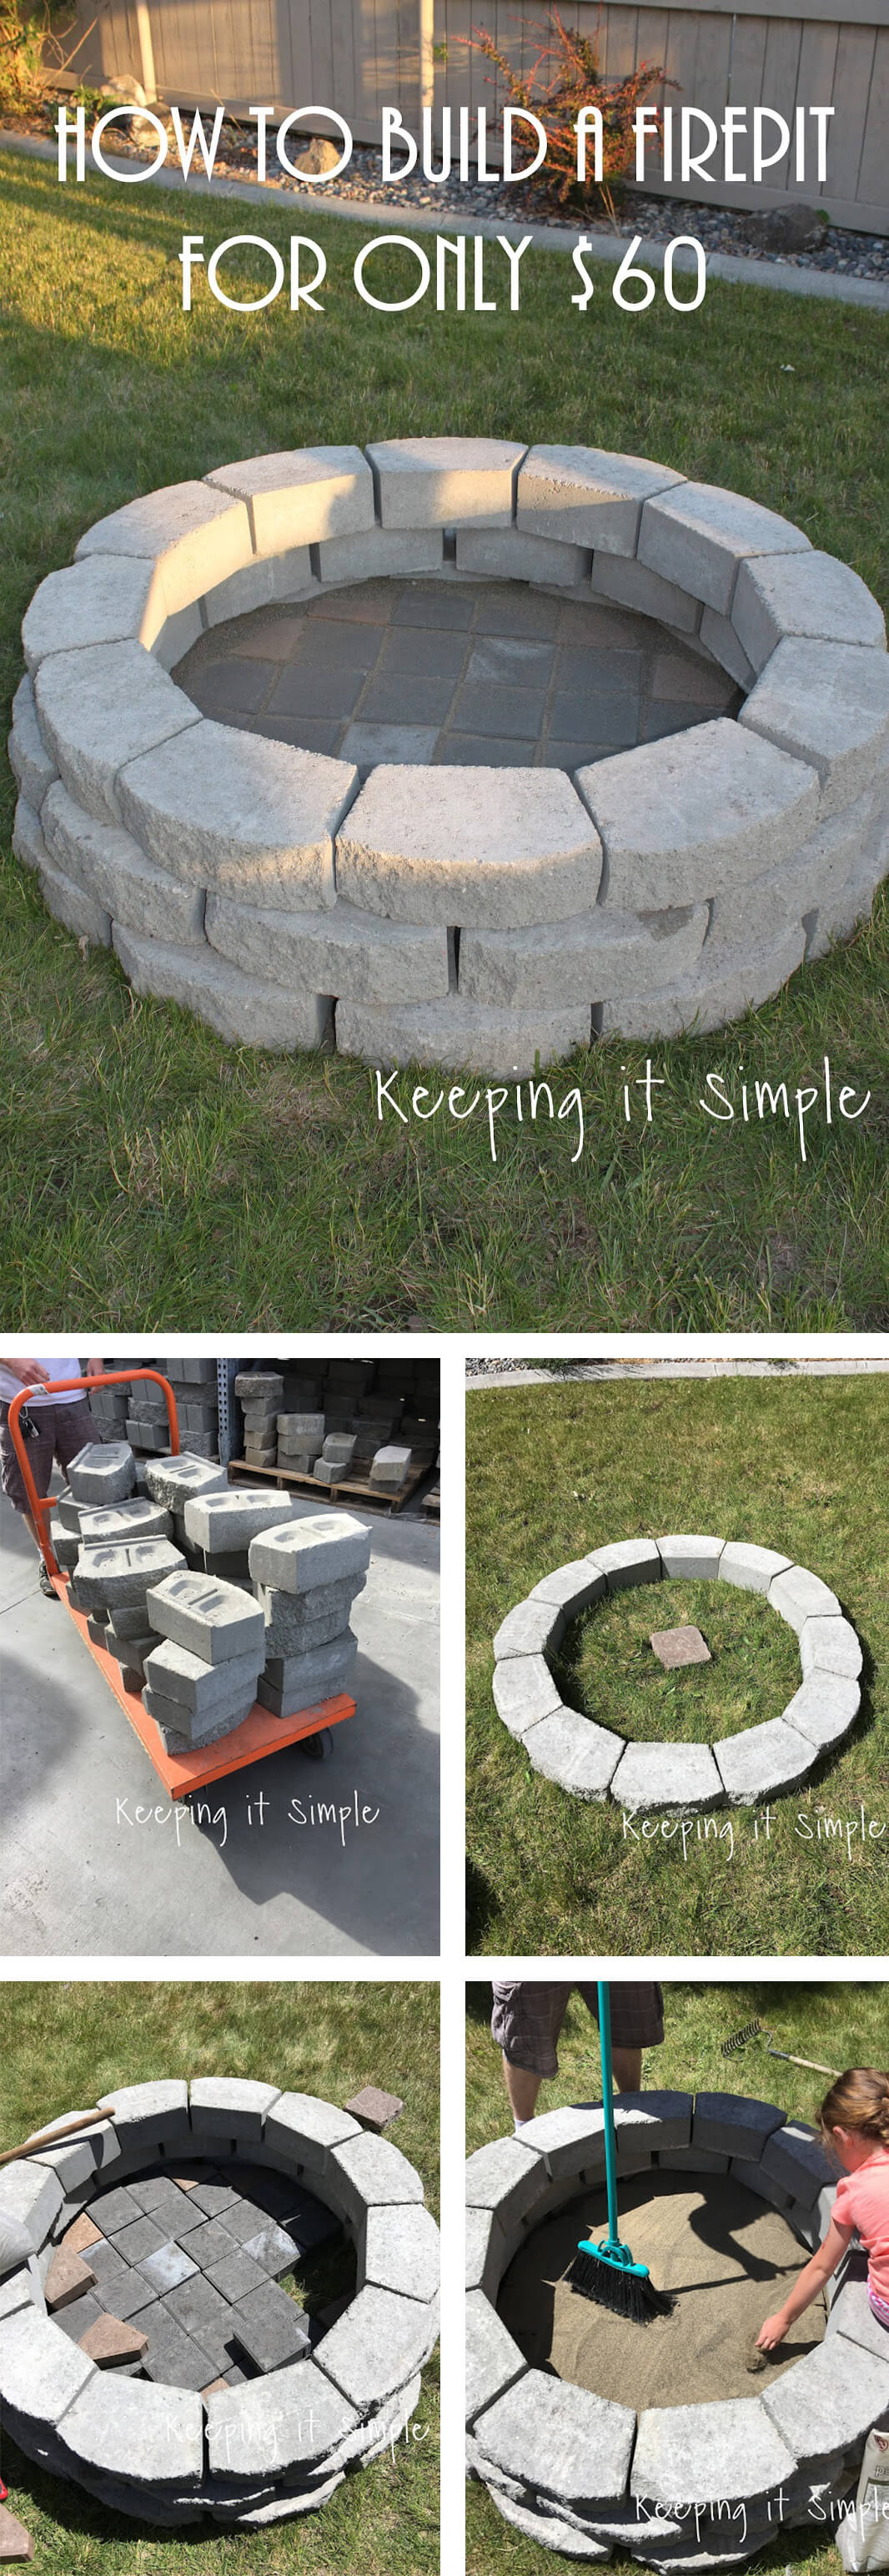 outdoor DIY fire pit ideas designs how to build the handy mano manomano stone